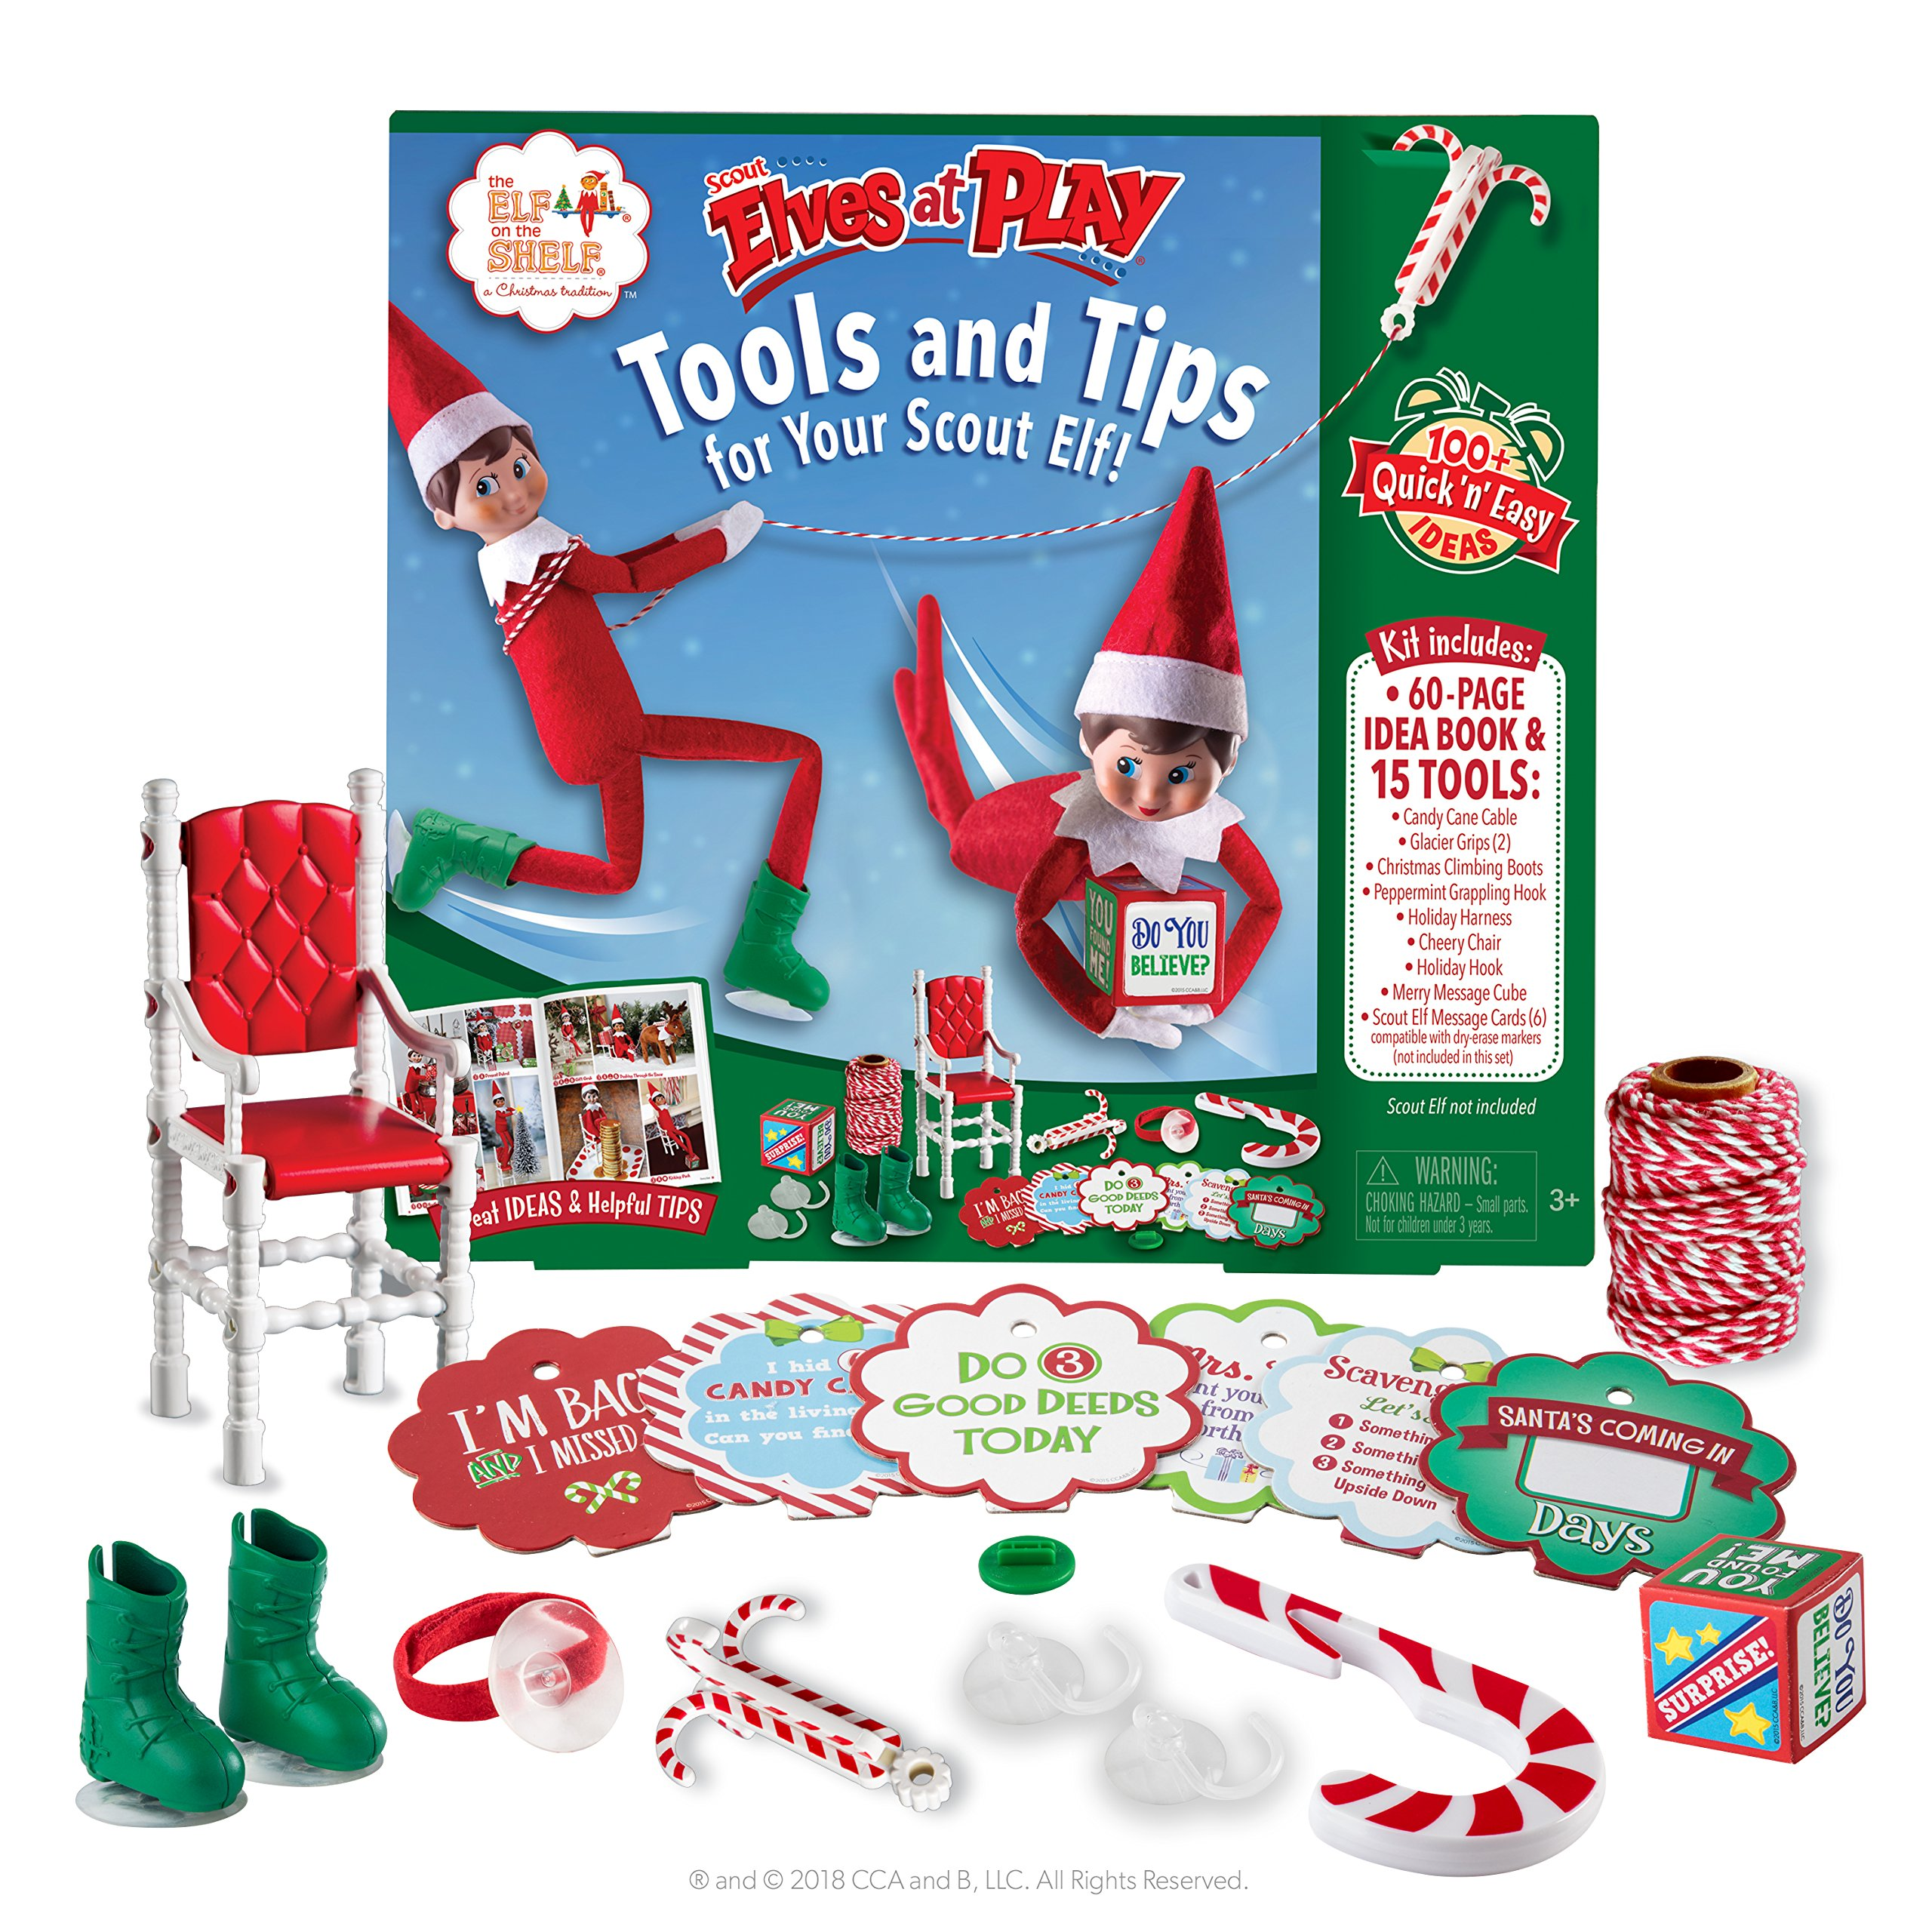 The Elf on the Shelf Scout Elves at Play Kit & Set with 60-page elf idea book | Elf on the Shelf Accessories | Elf on the Shelf Props, Elf Accessories, Elf Ideas, Elf Props | Elf on Shelf Accessories